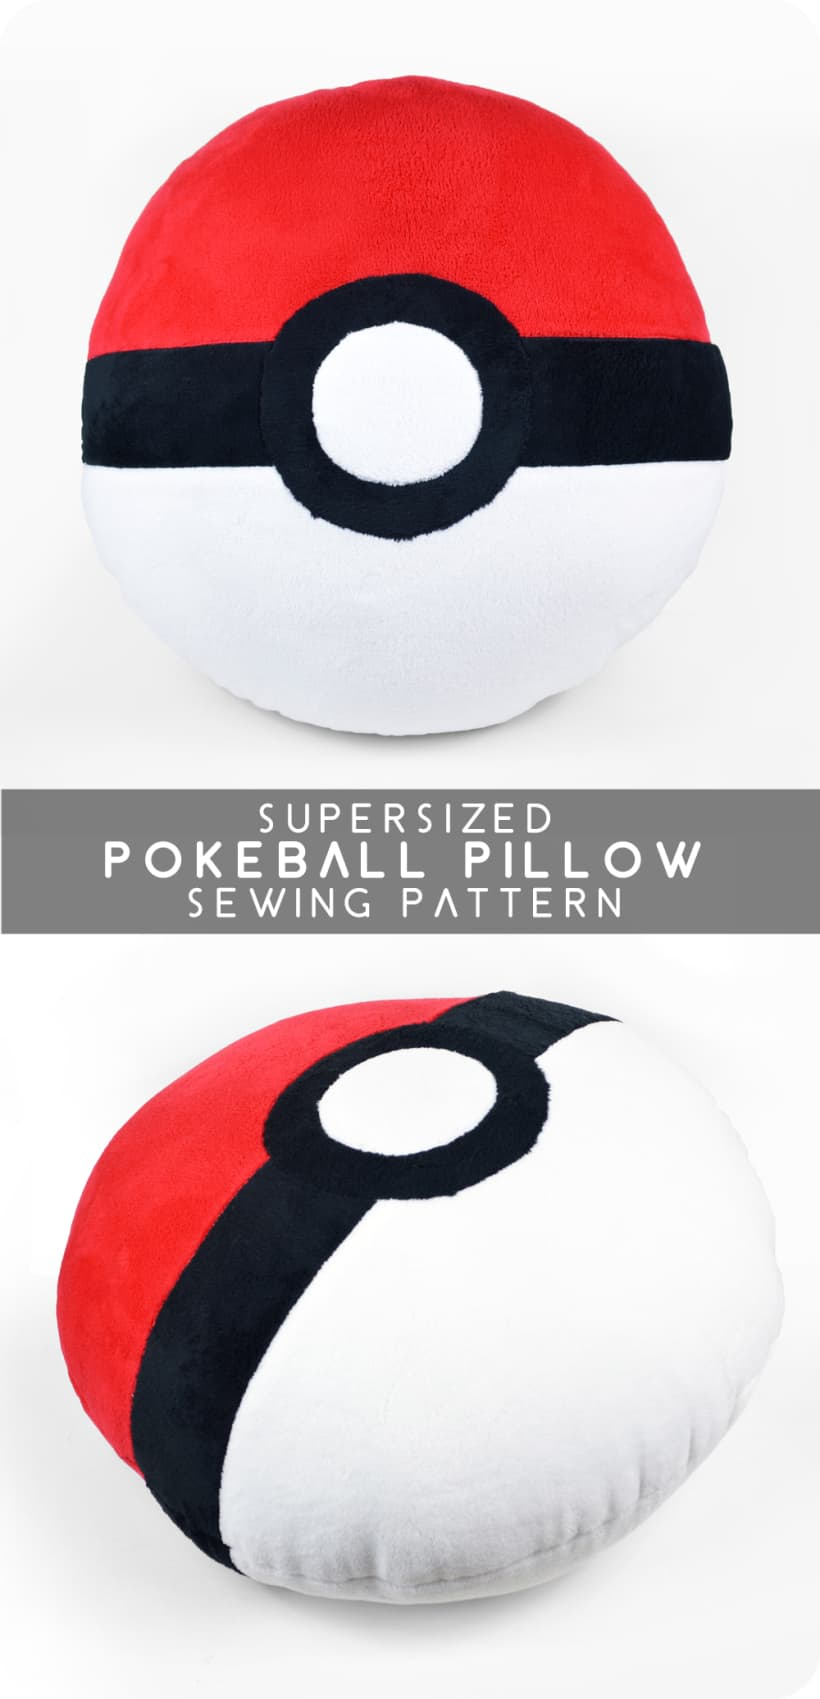 Supersized Pokeball cushion